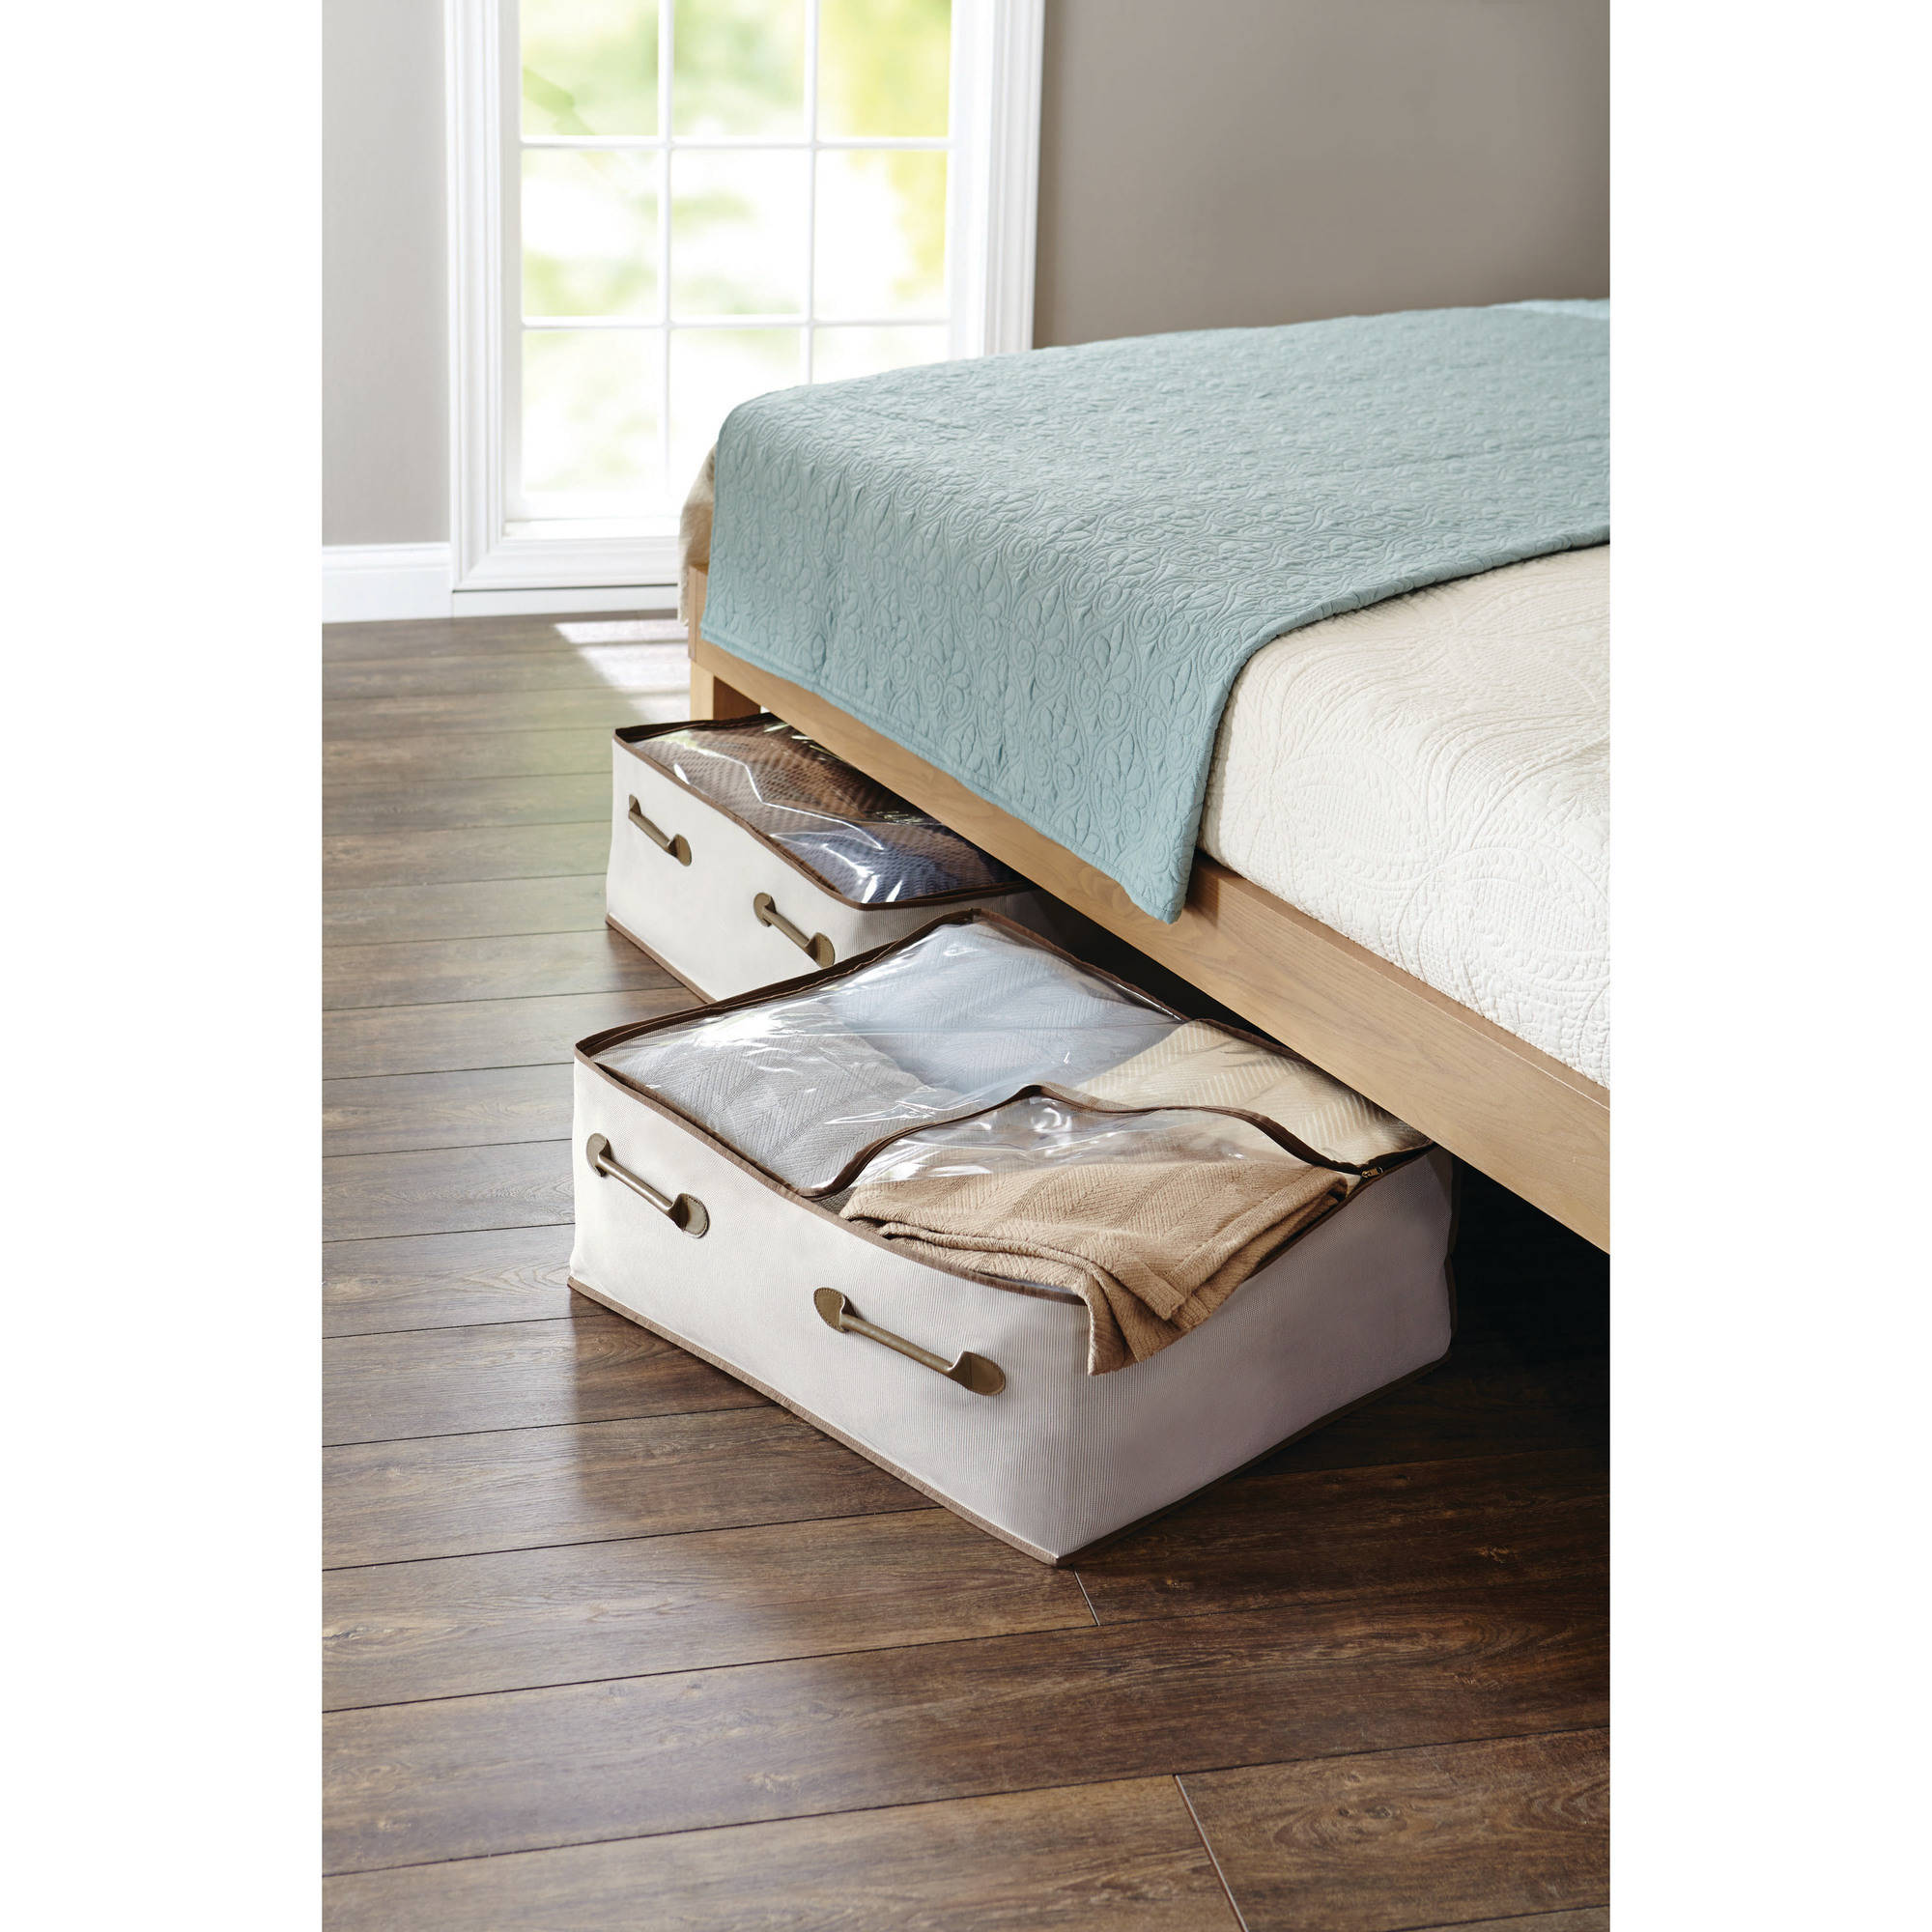 Better Homes and Gardens Underbed Organizer